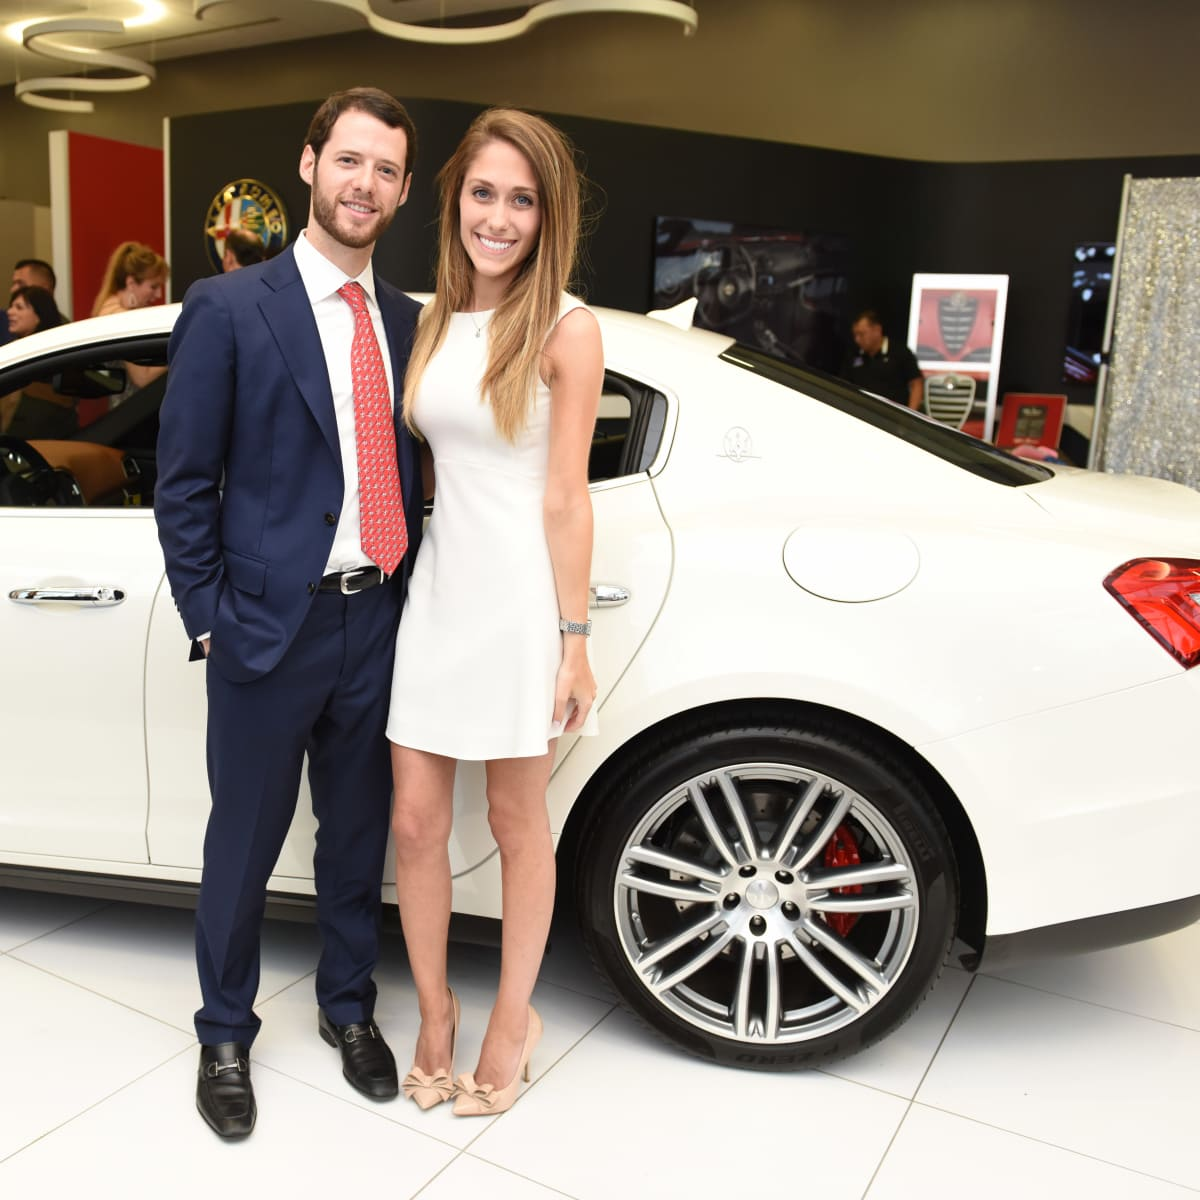 River Oaks Dodge >> Masserati fever at dealership opening; turnout is as sexy as the cars - CultureMap Houston